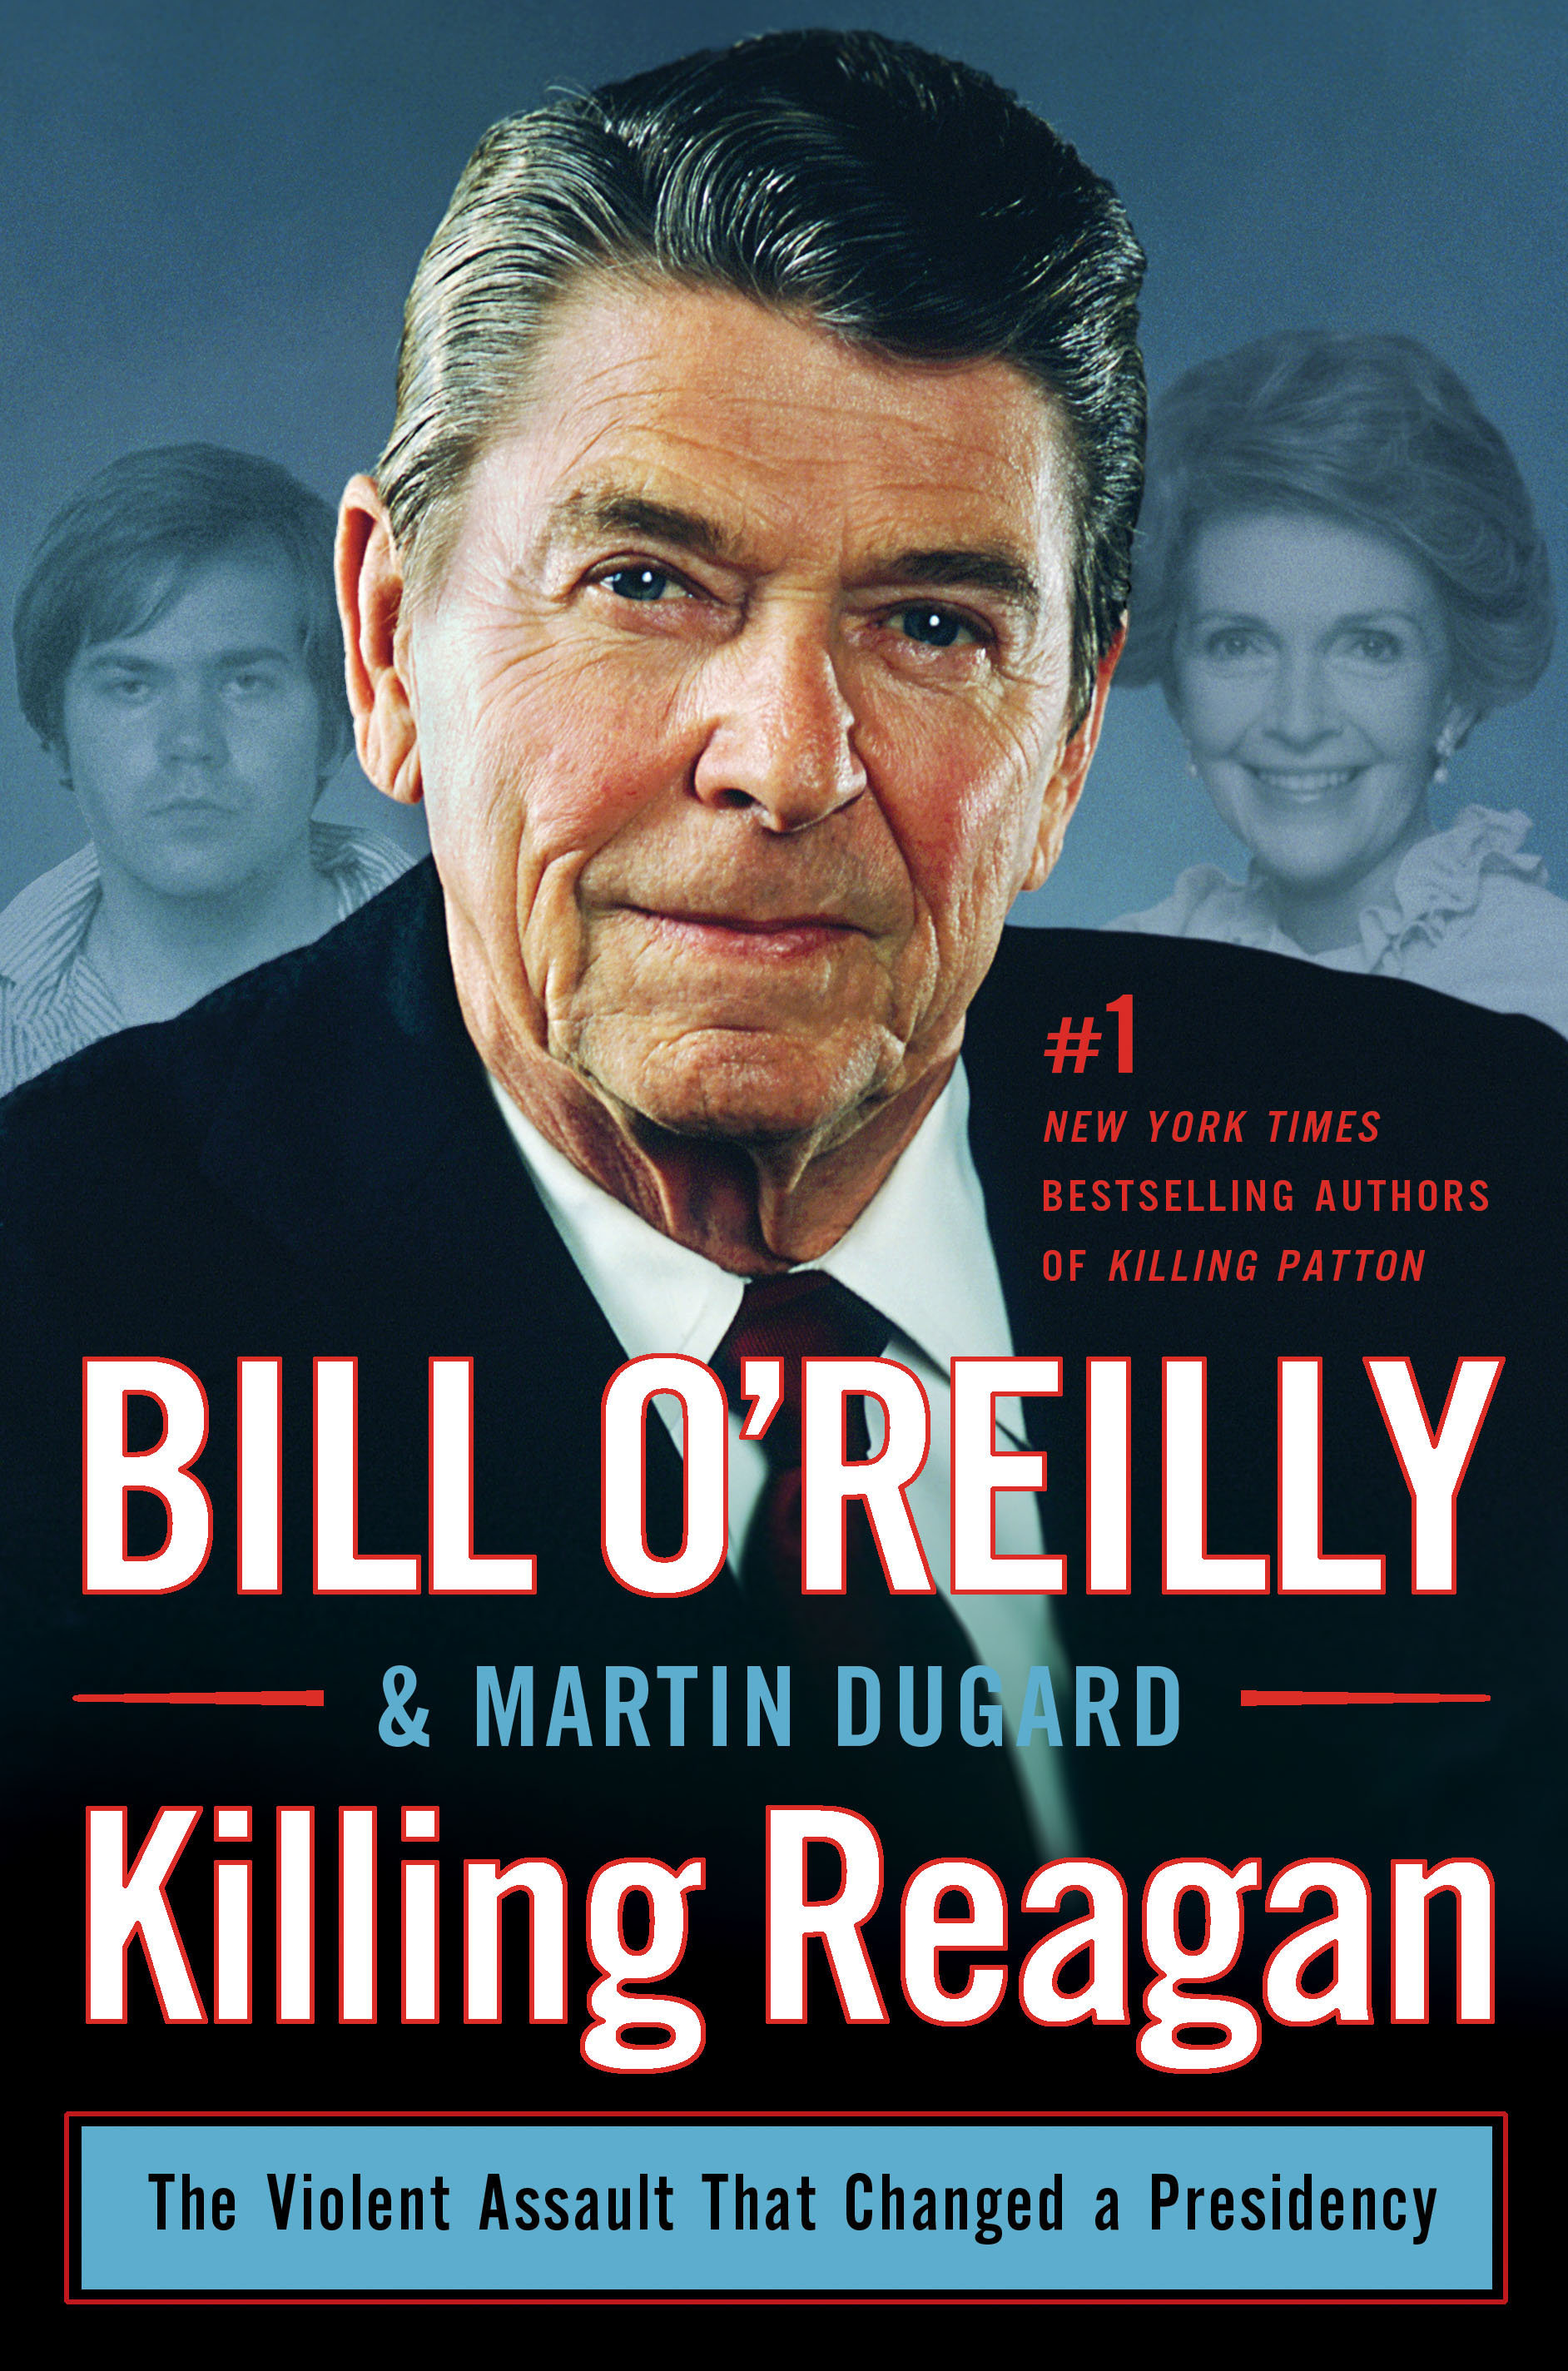 Killing Reagan The Violent Assault That Changed a Presidency